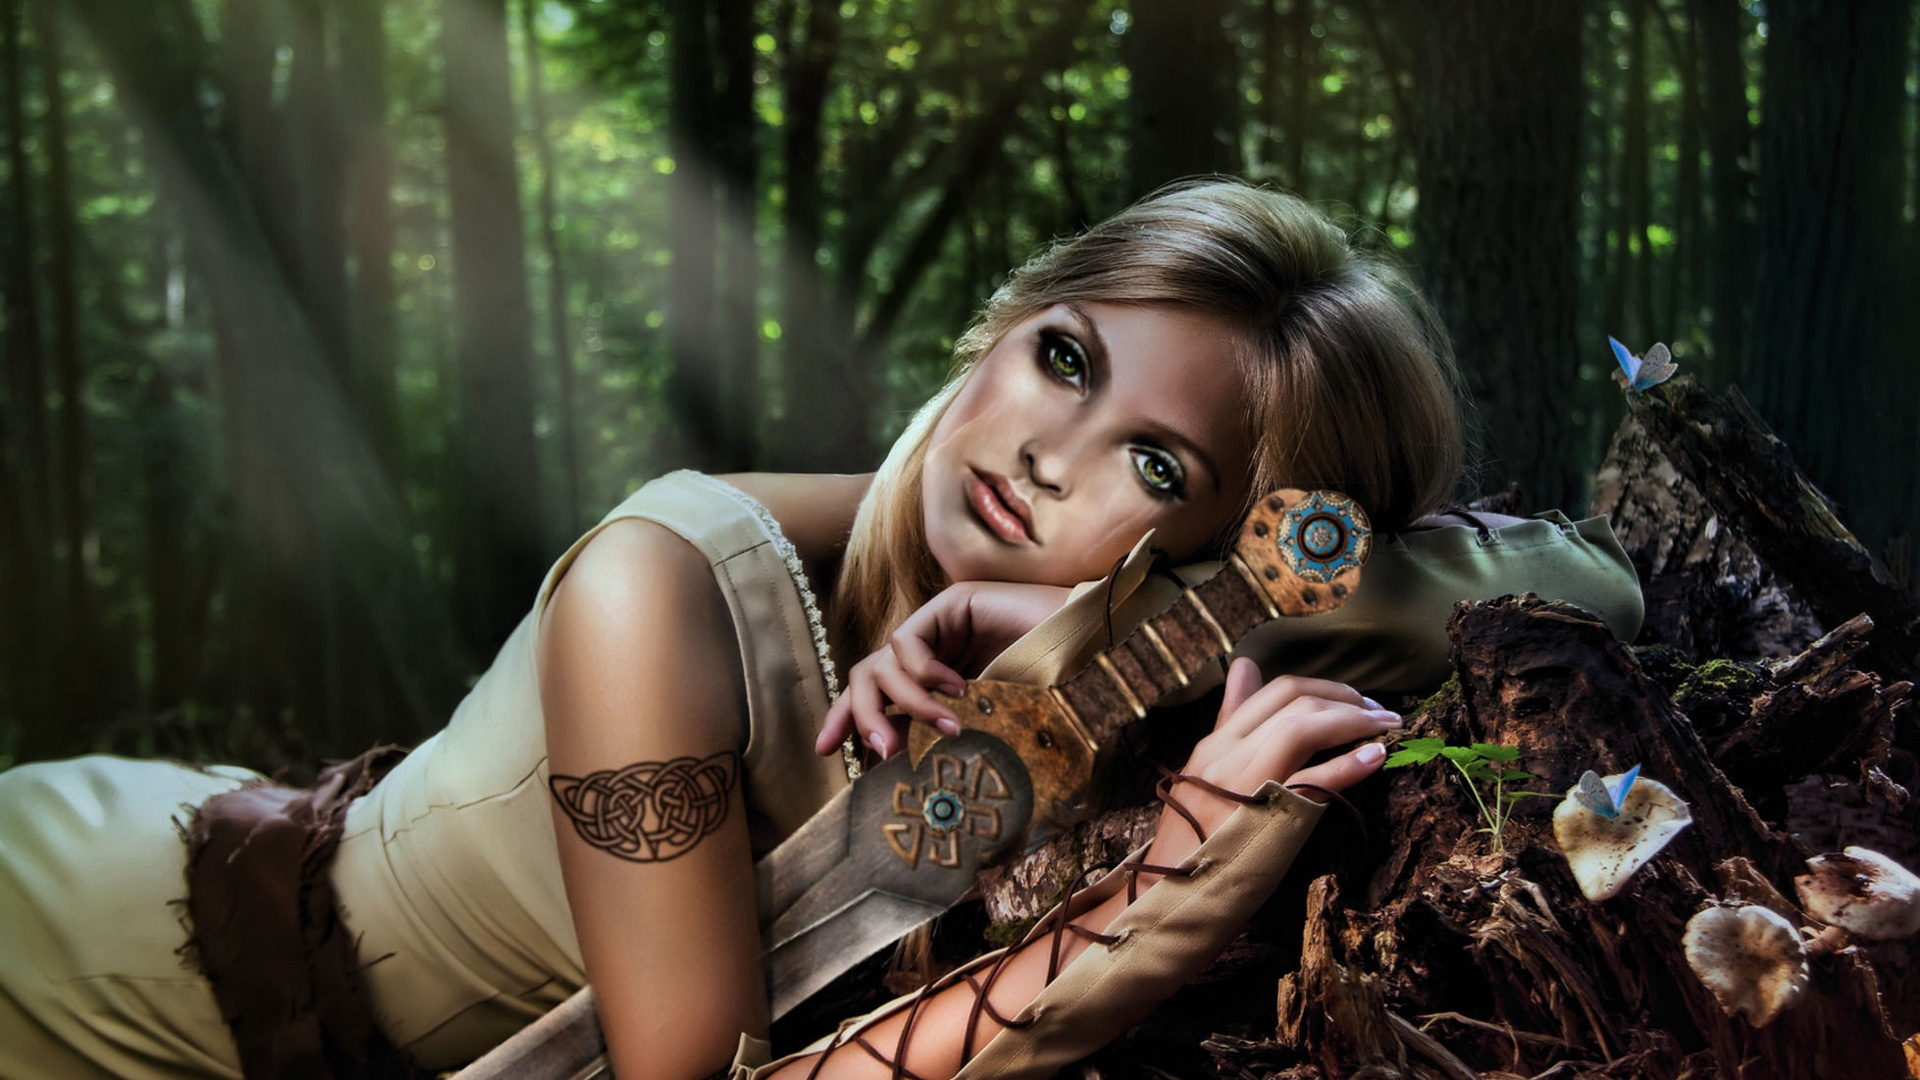 Wallpaper fantasy girl green eyes arms sword forest - Girl with sword wallpaper ...